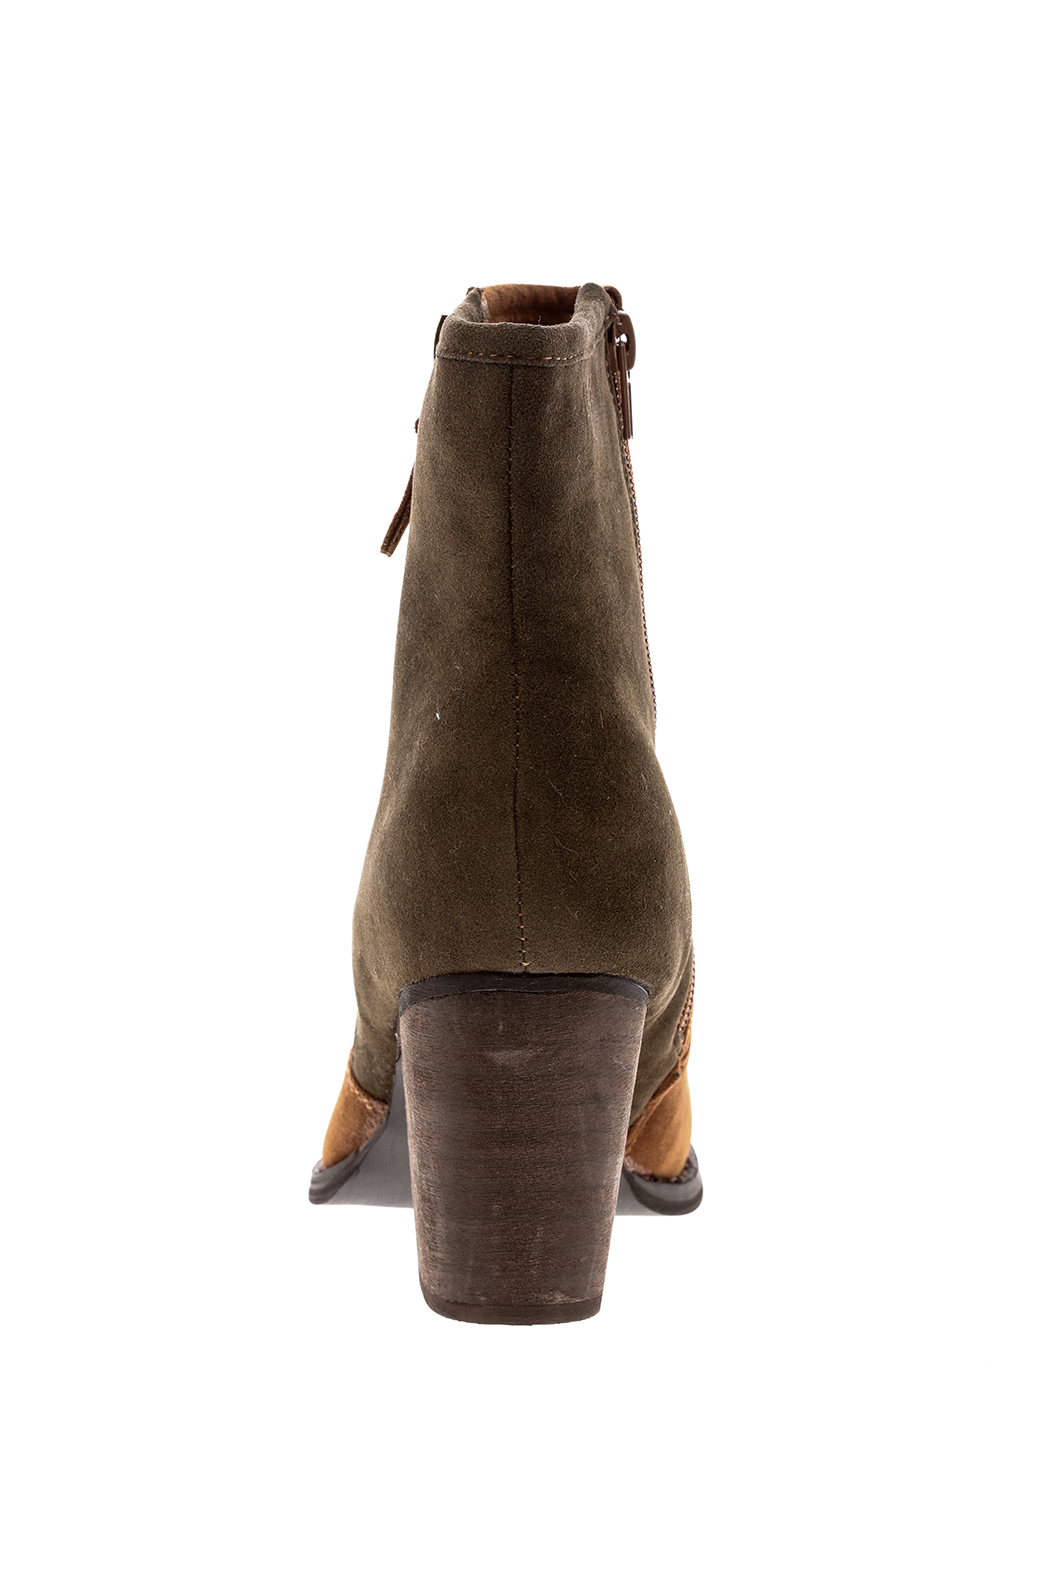 Charlie Paige Two Tones Booties - Front Full Image